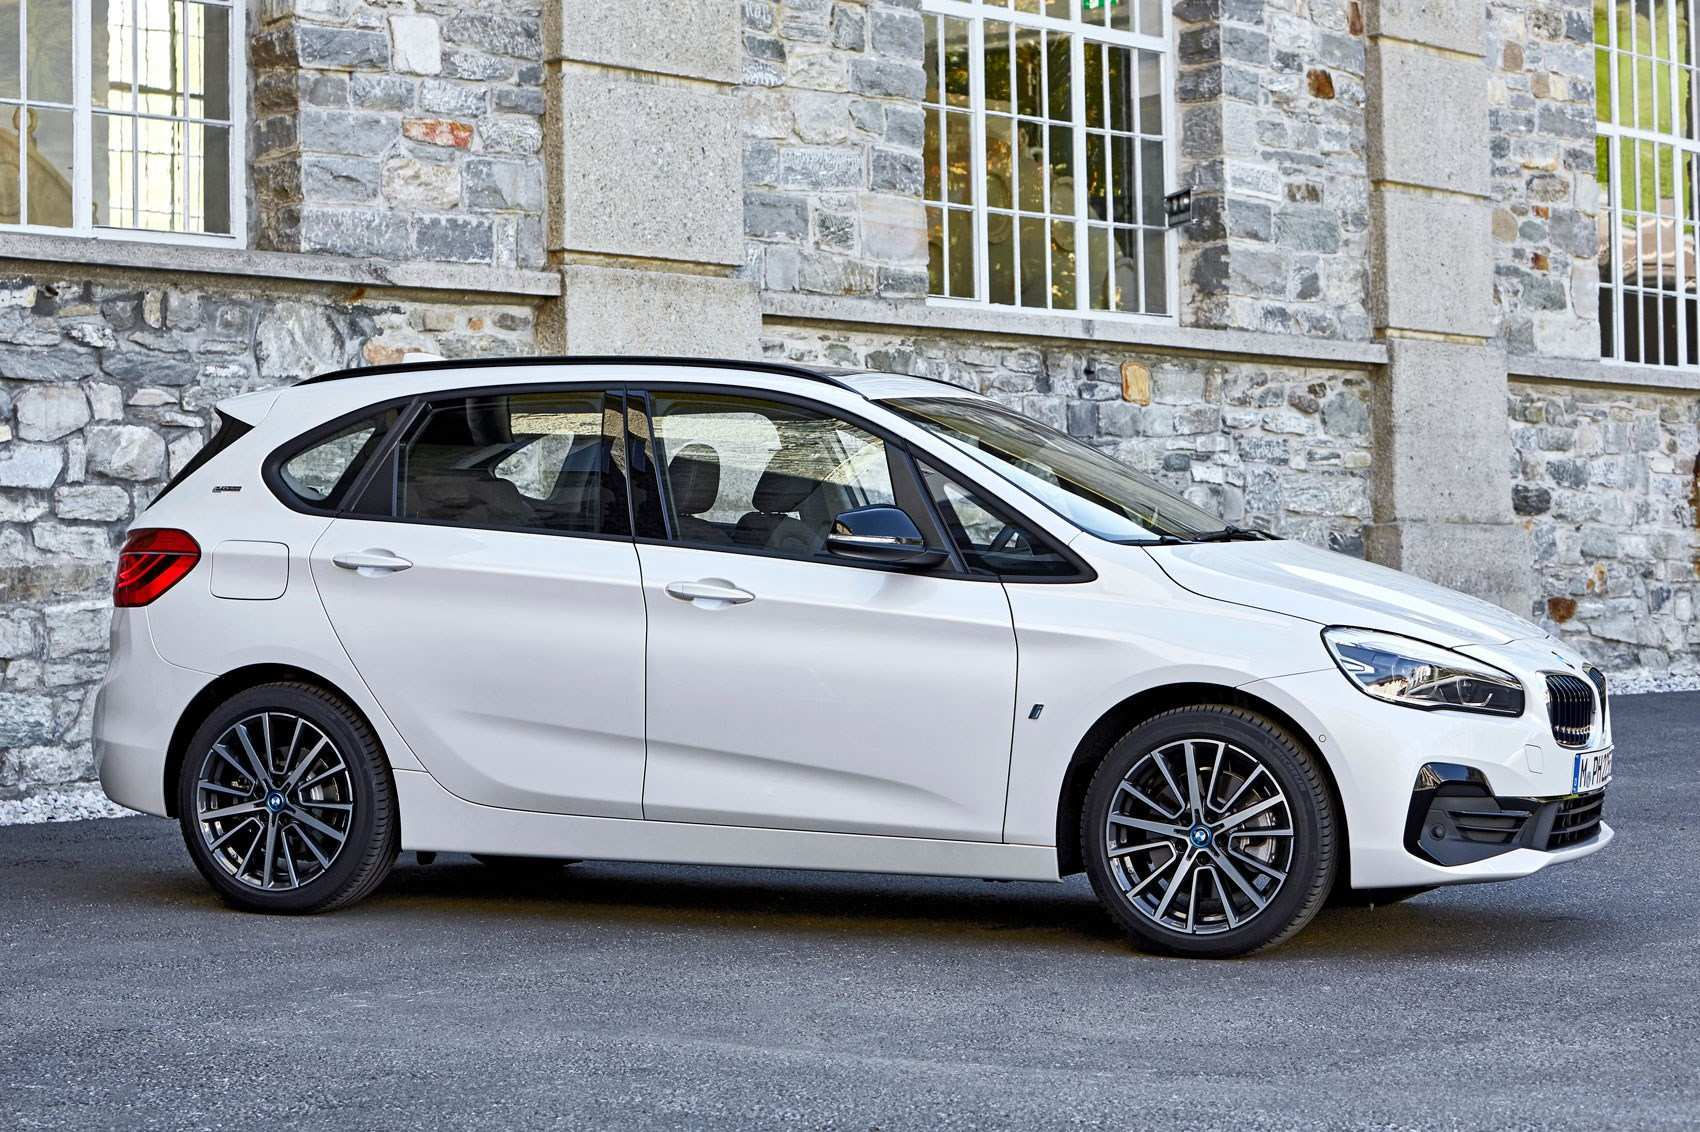 51 Best Review 2019 Bmw Active Tourer Spesification for 2019 Bmw Active Tourer